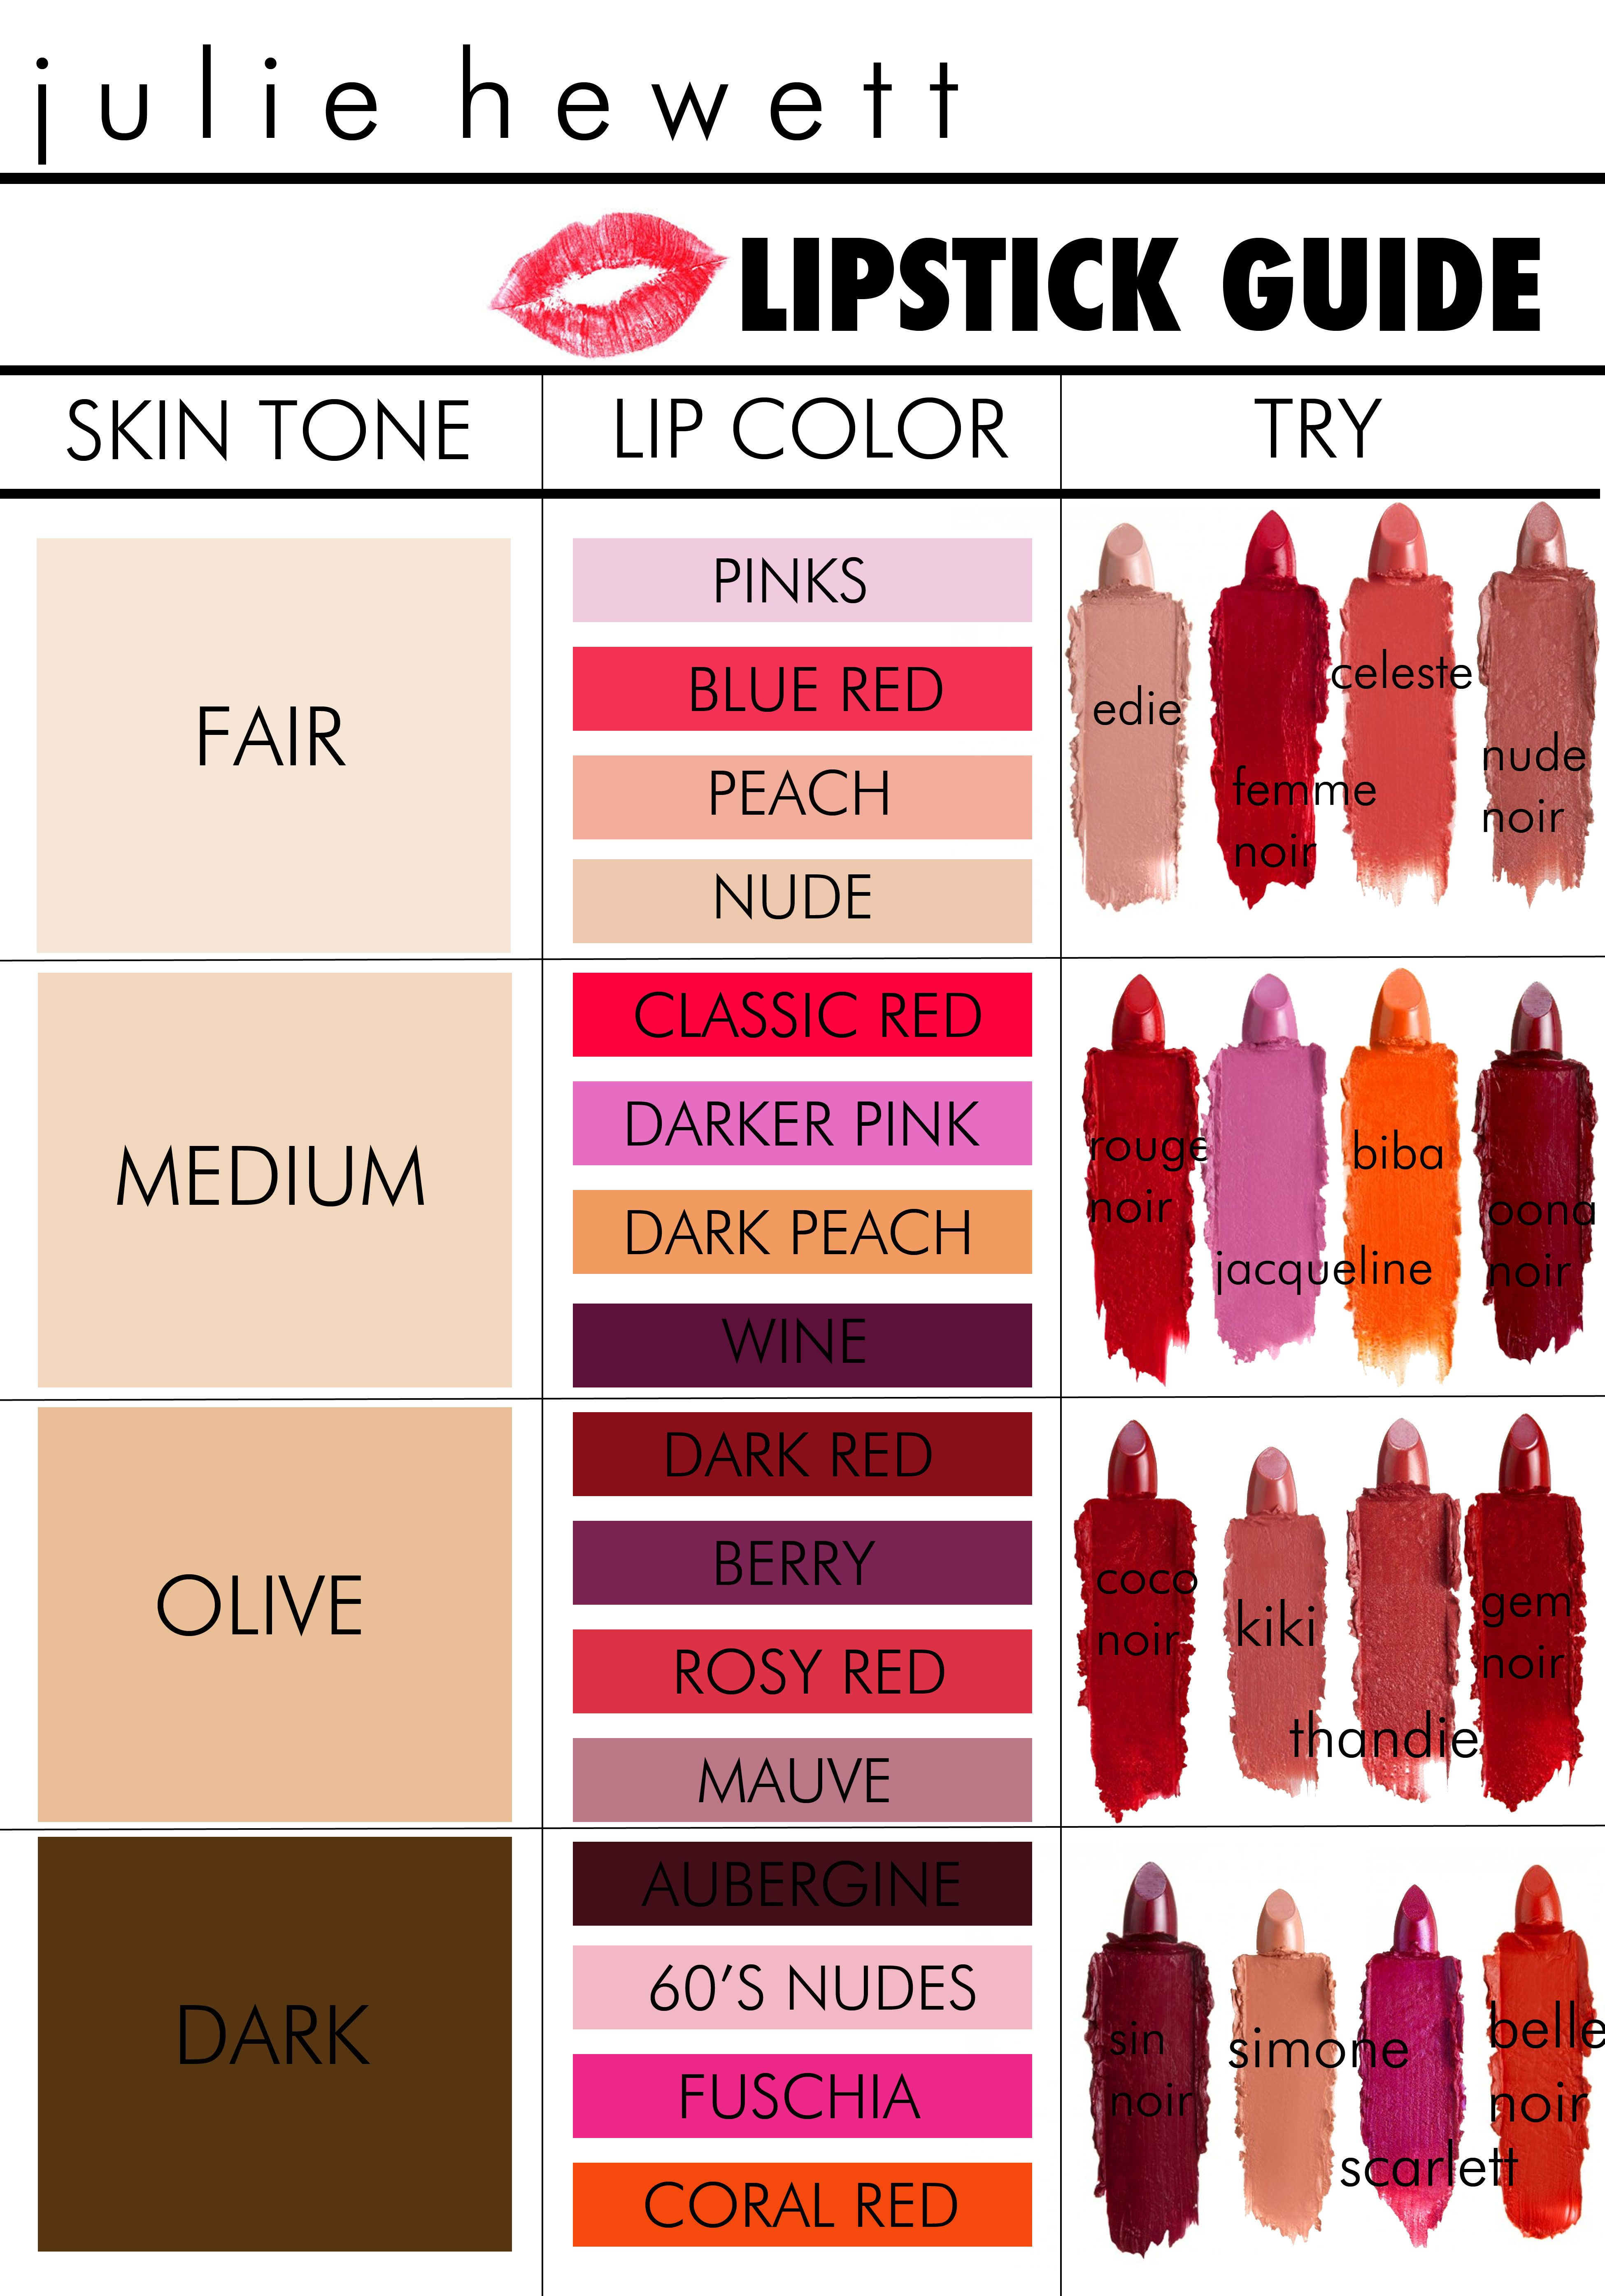 Lipstick Guide (With images) Lipstick guide, Lipstick